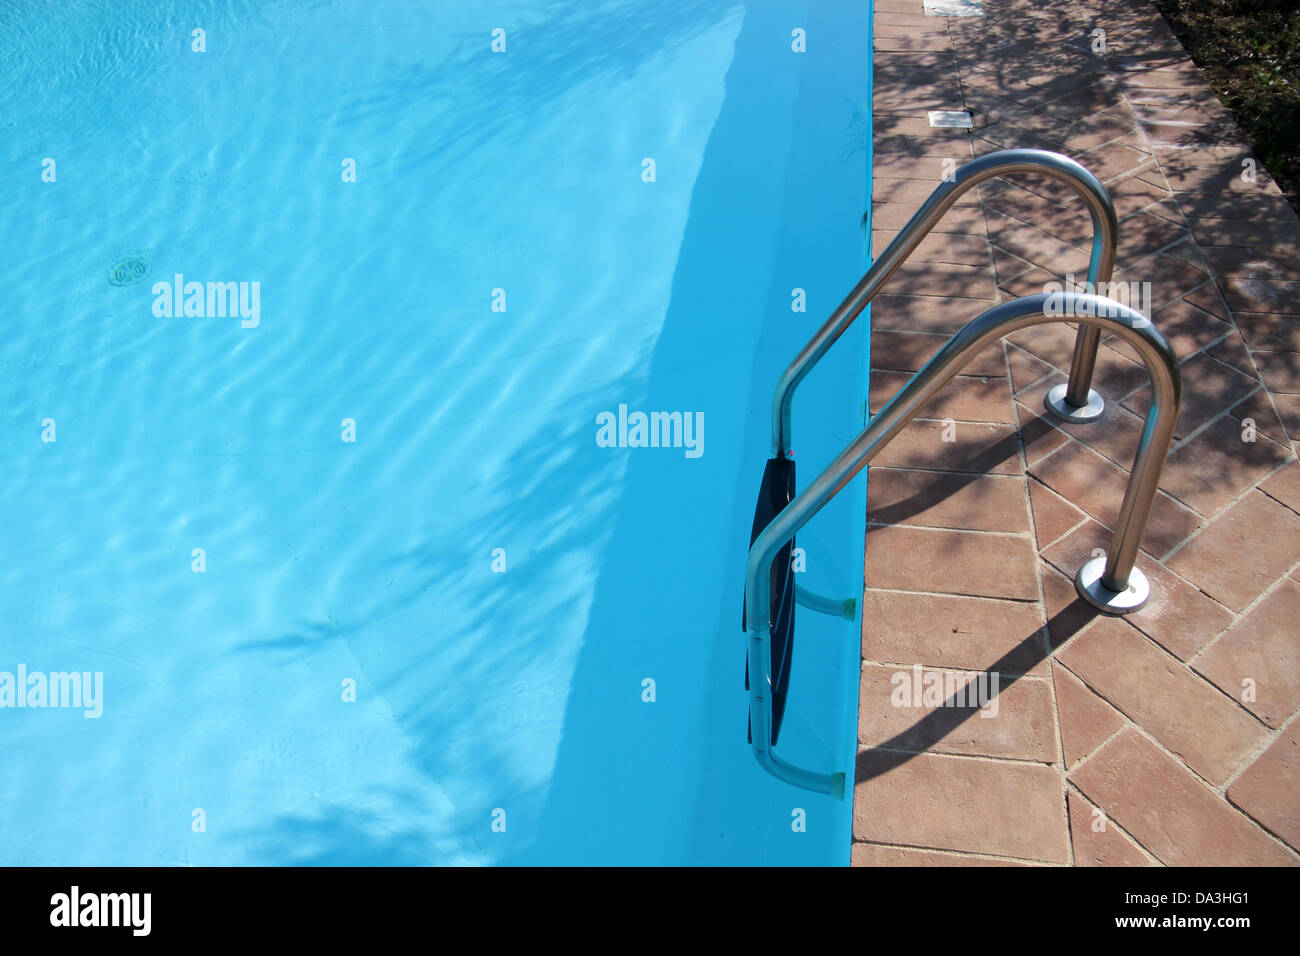 Water reflections in the swimming pool on a sunny day - Stock Image